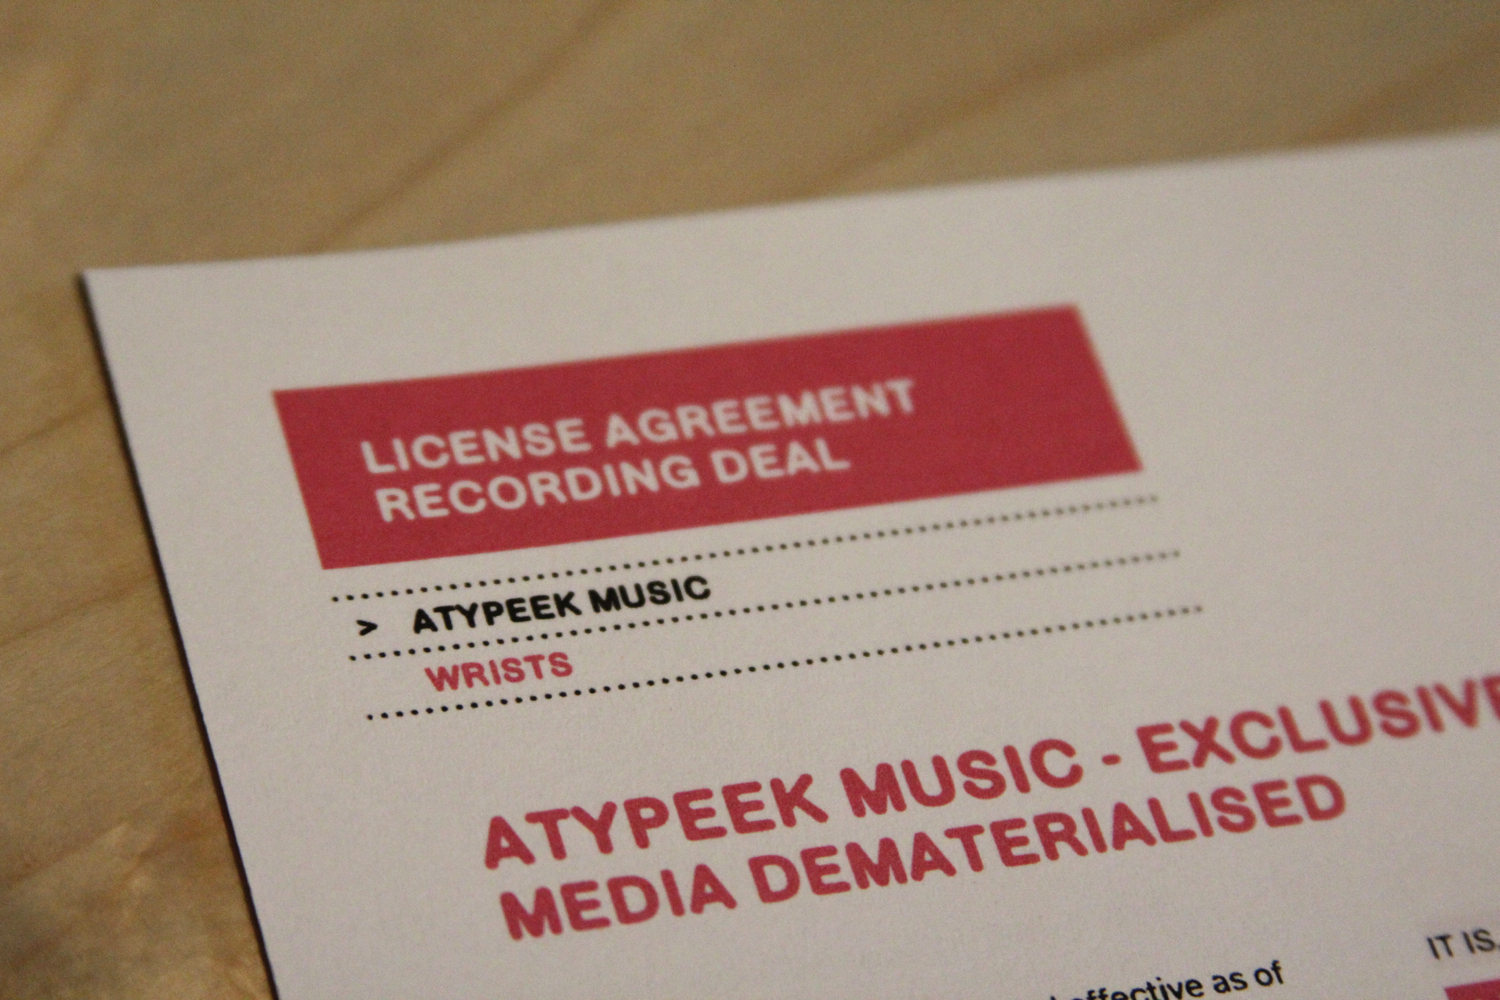 Contract With Atypeek Music